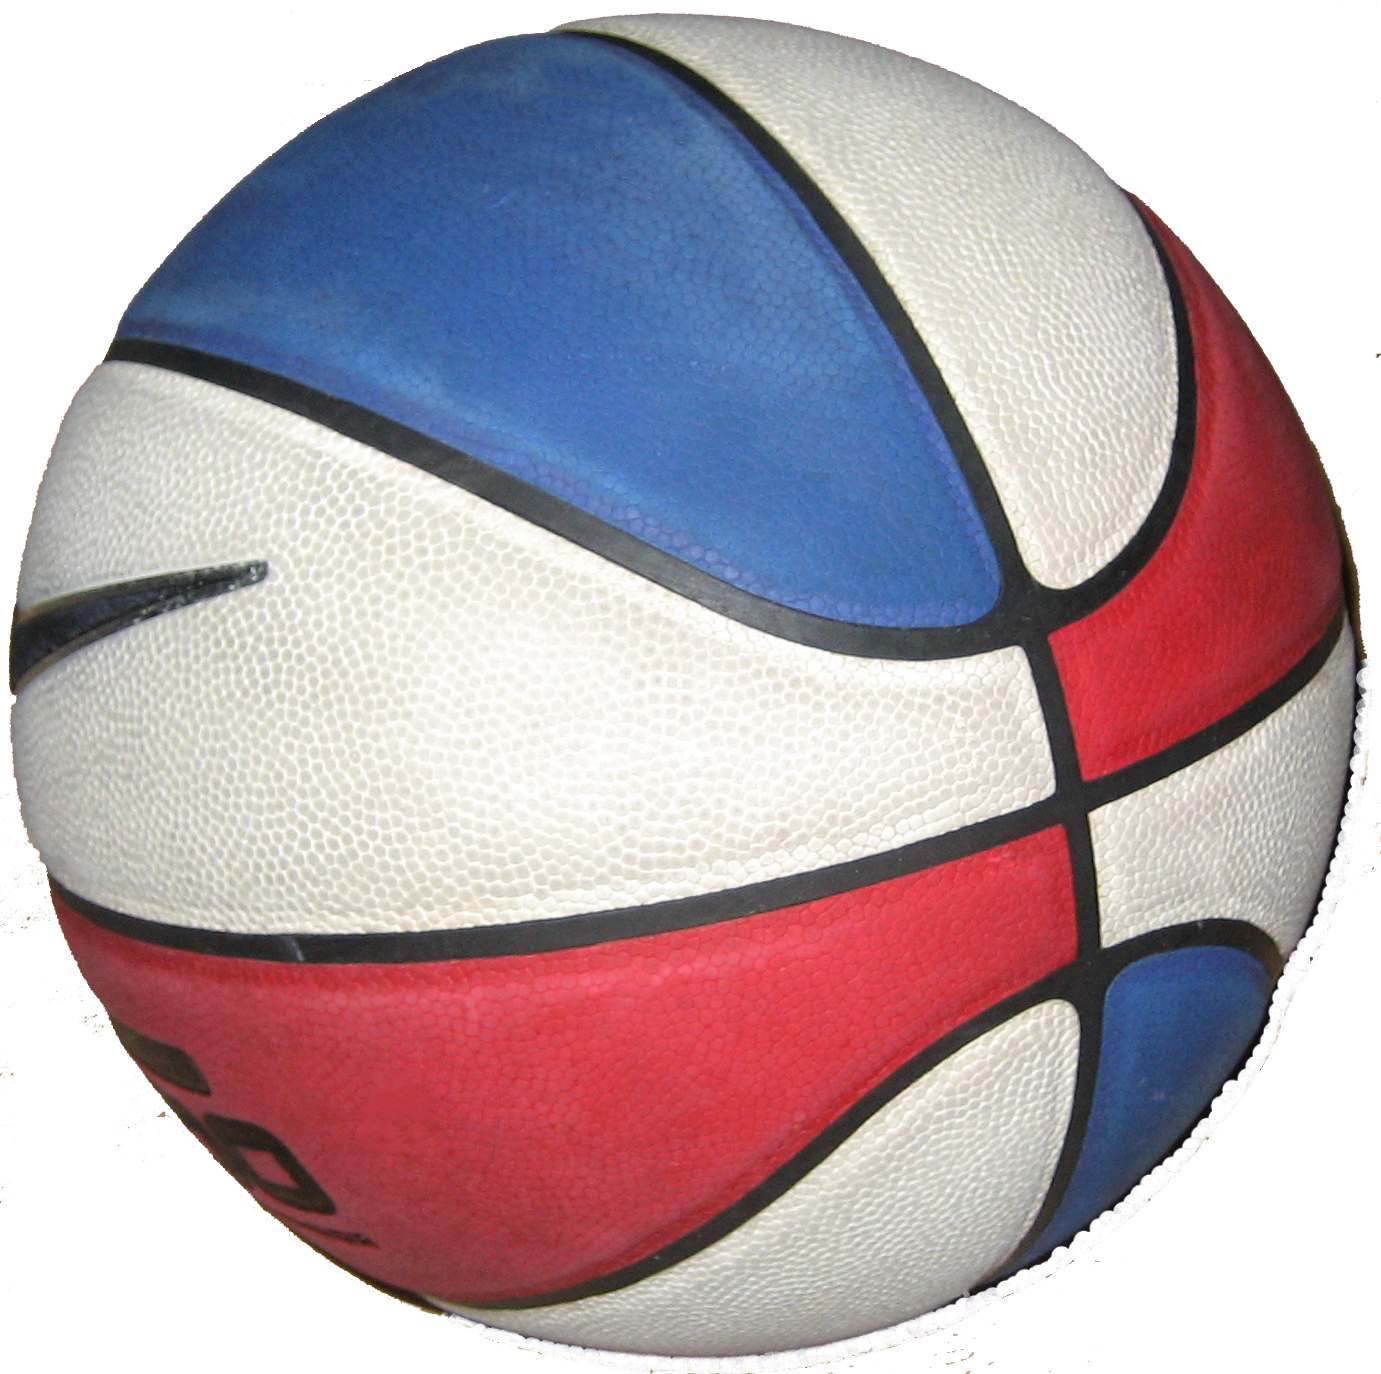 Download And Use Basketball Png Clipart image #26244